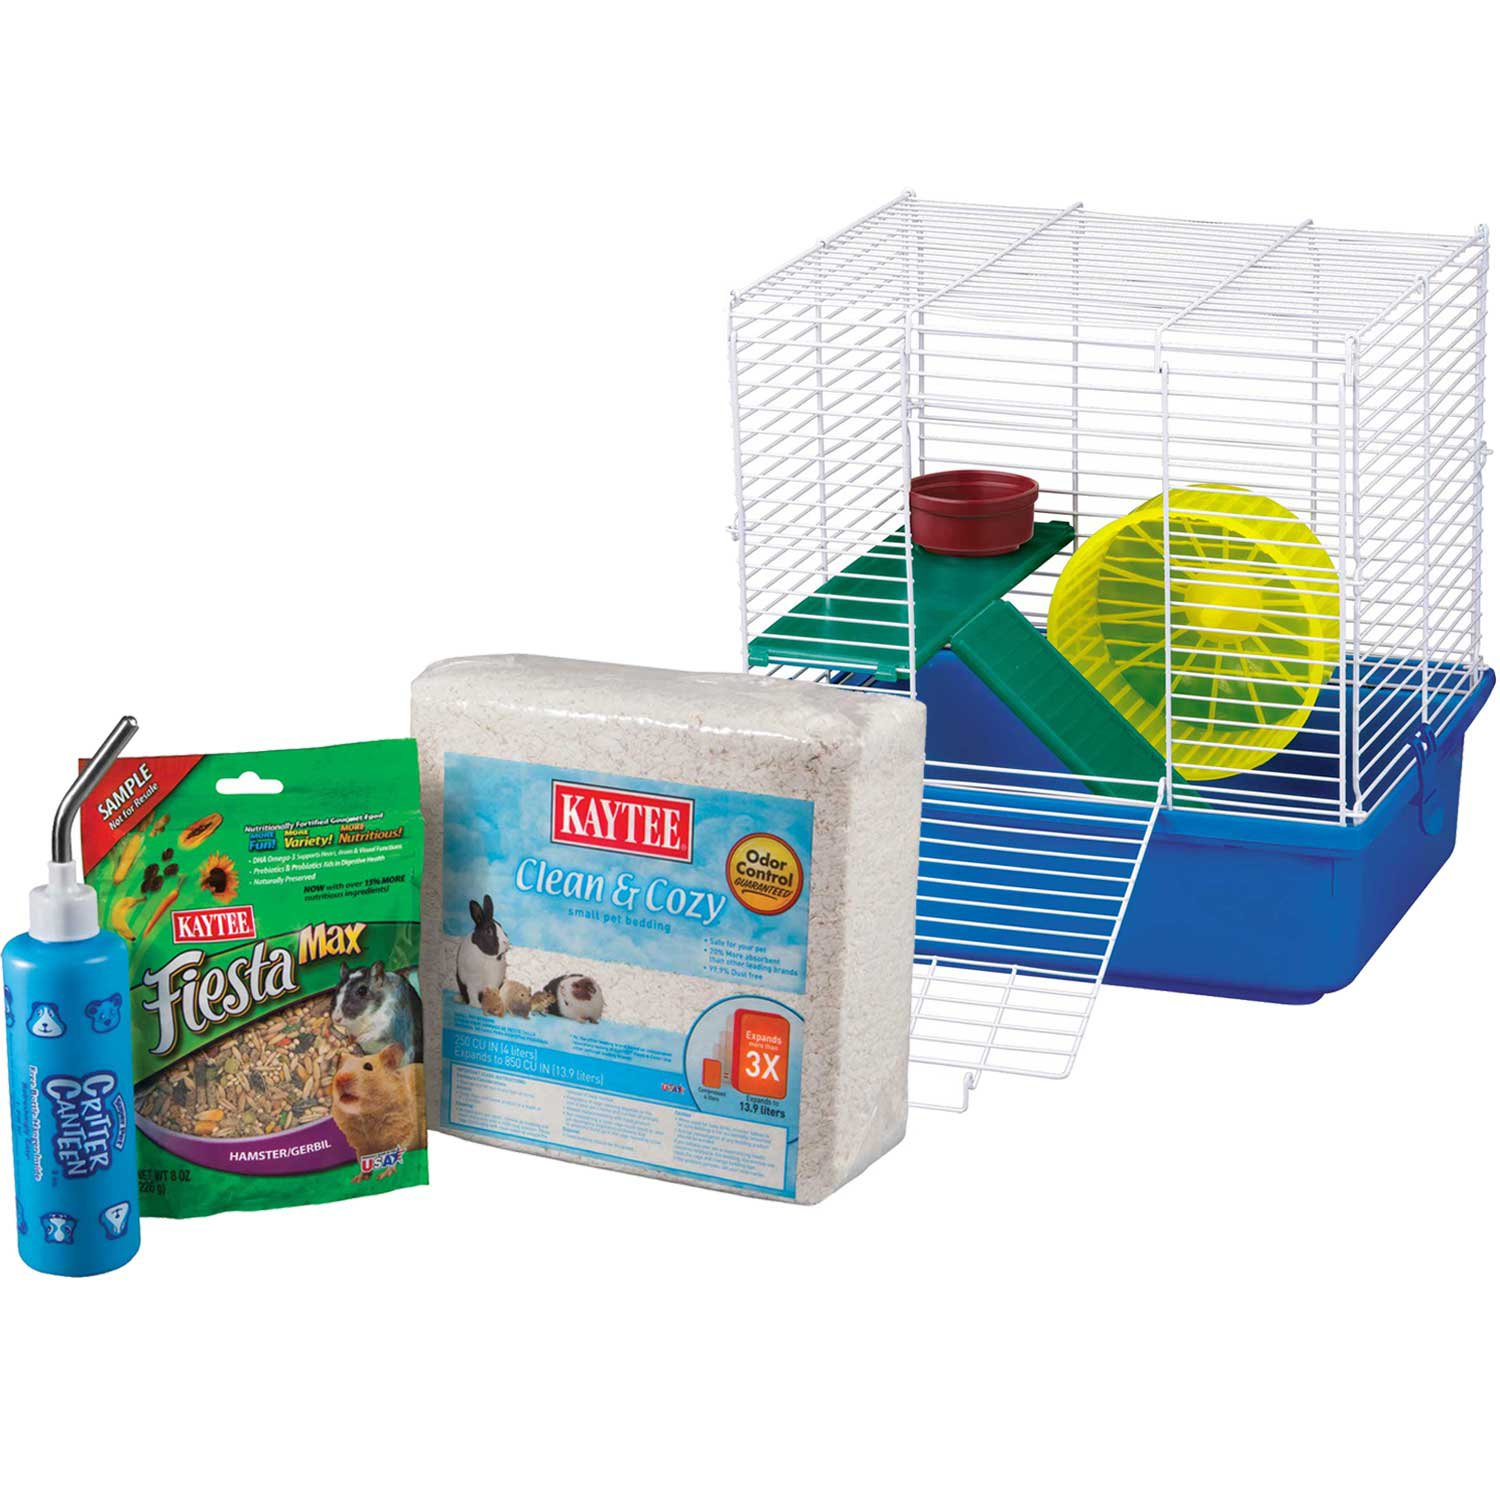 Kaytee Complete Two Story Hamster Kit